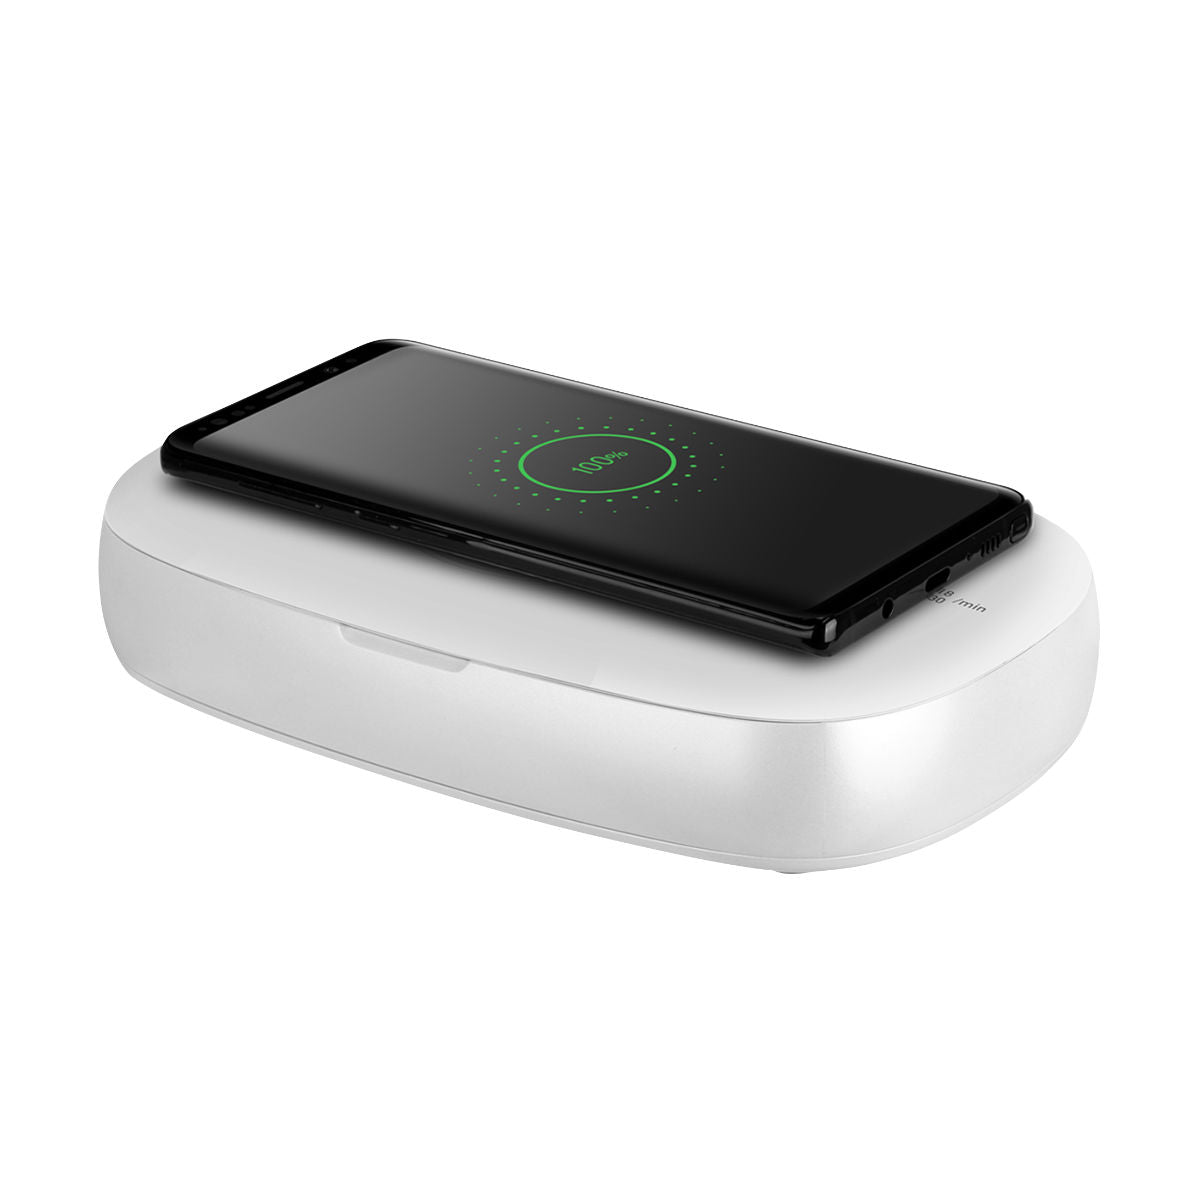 Q.Power UV-Box UV Sanitising box with wireless charging